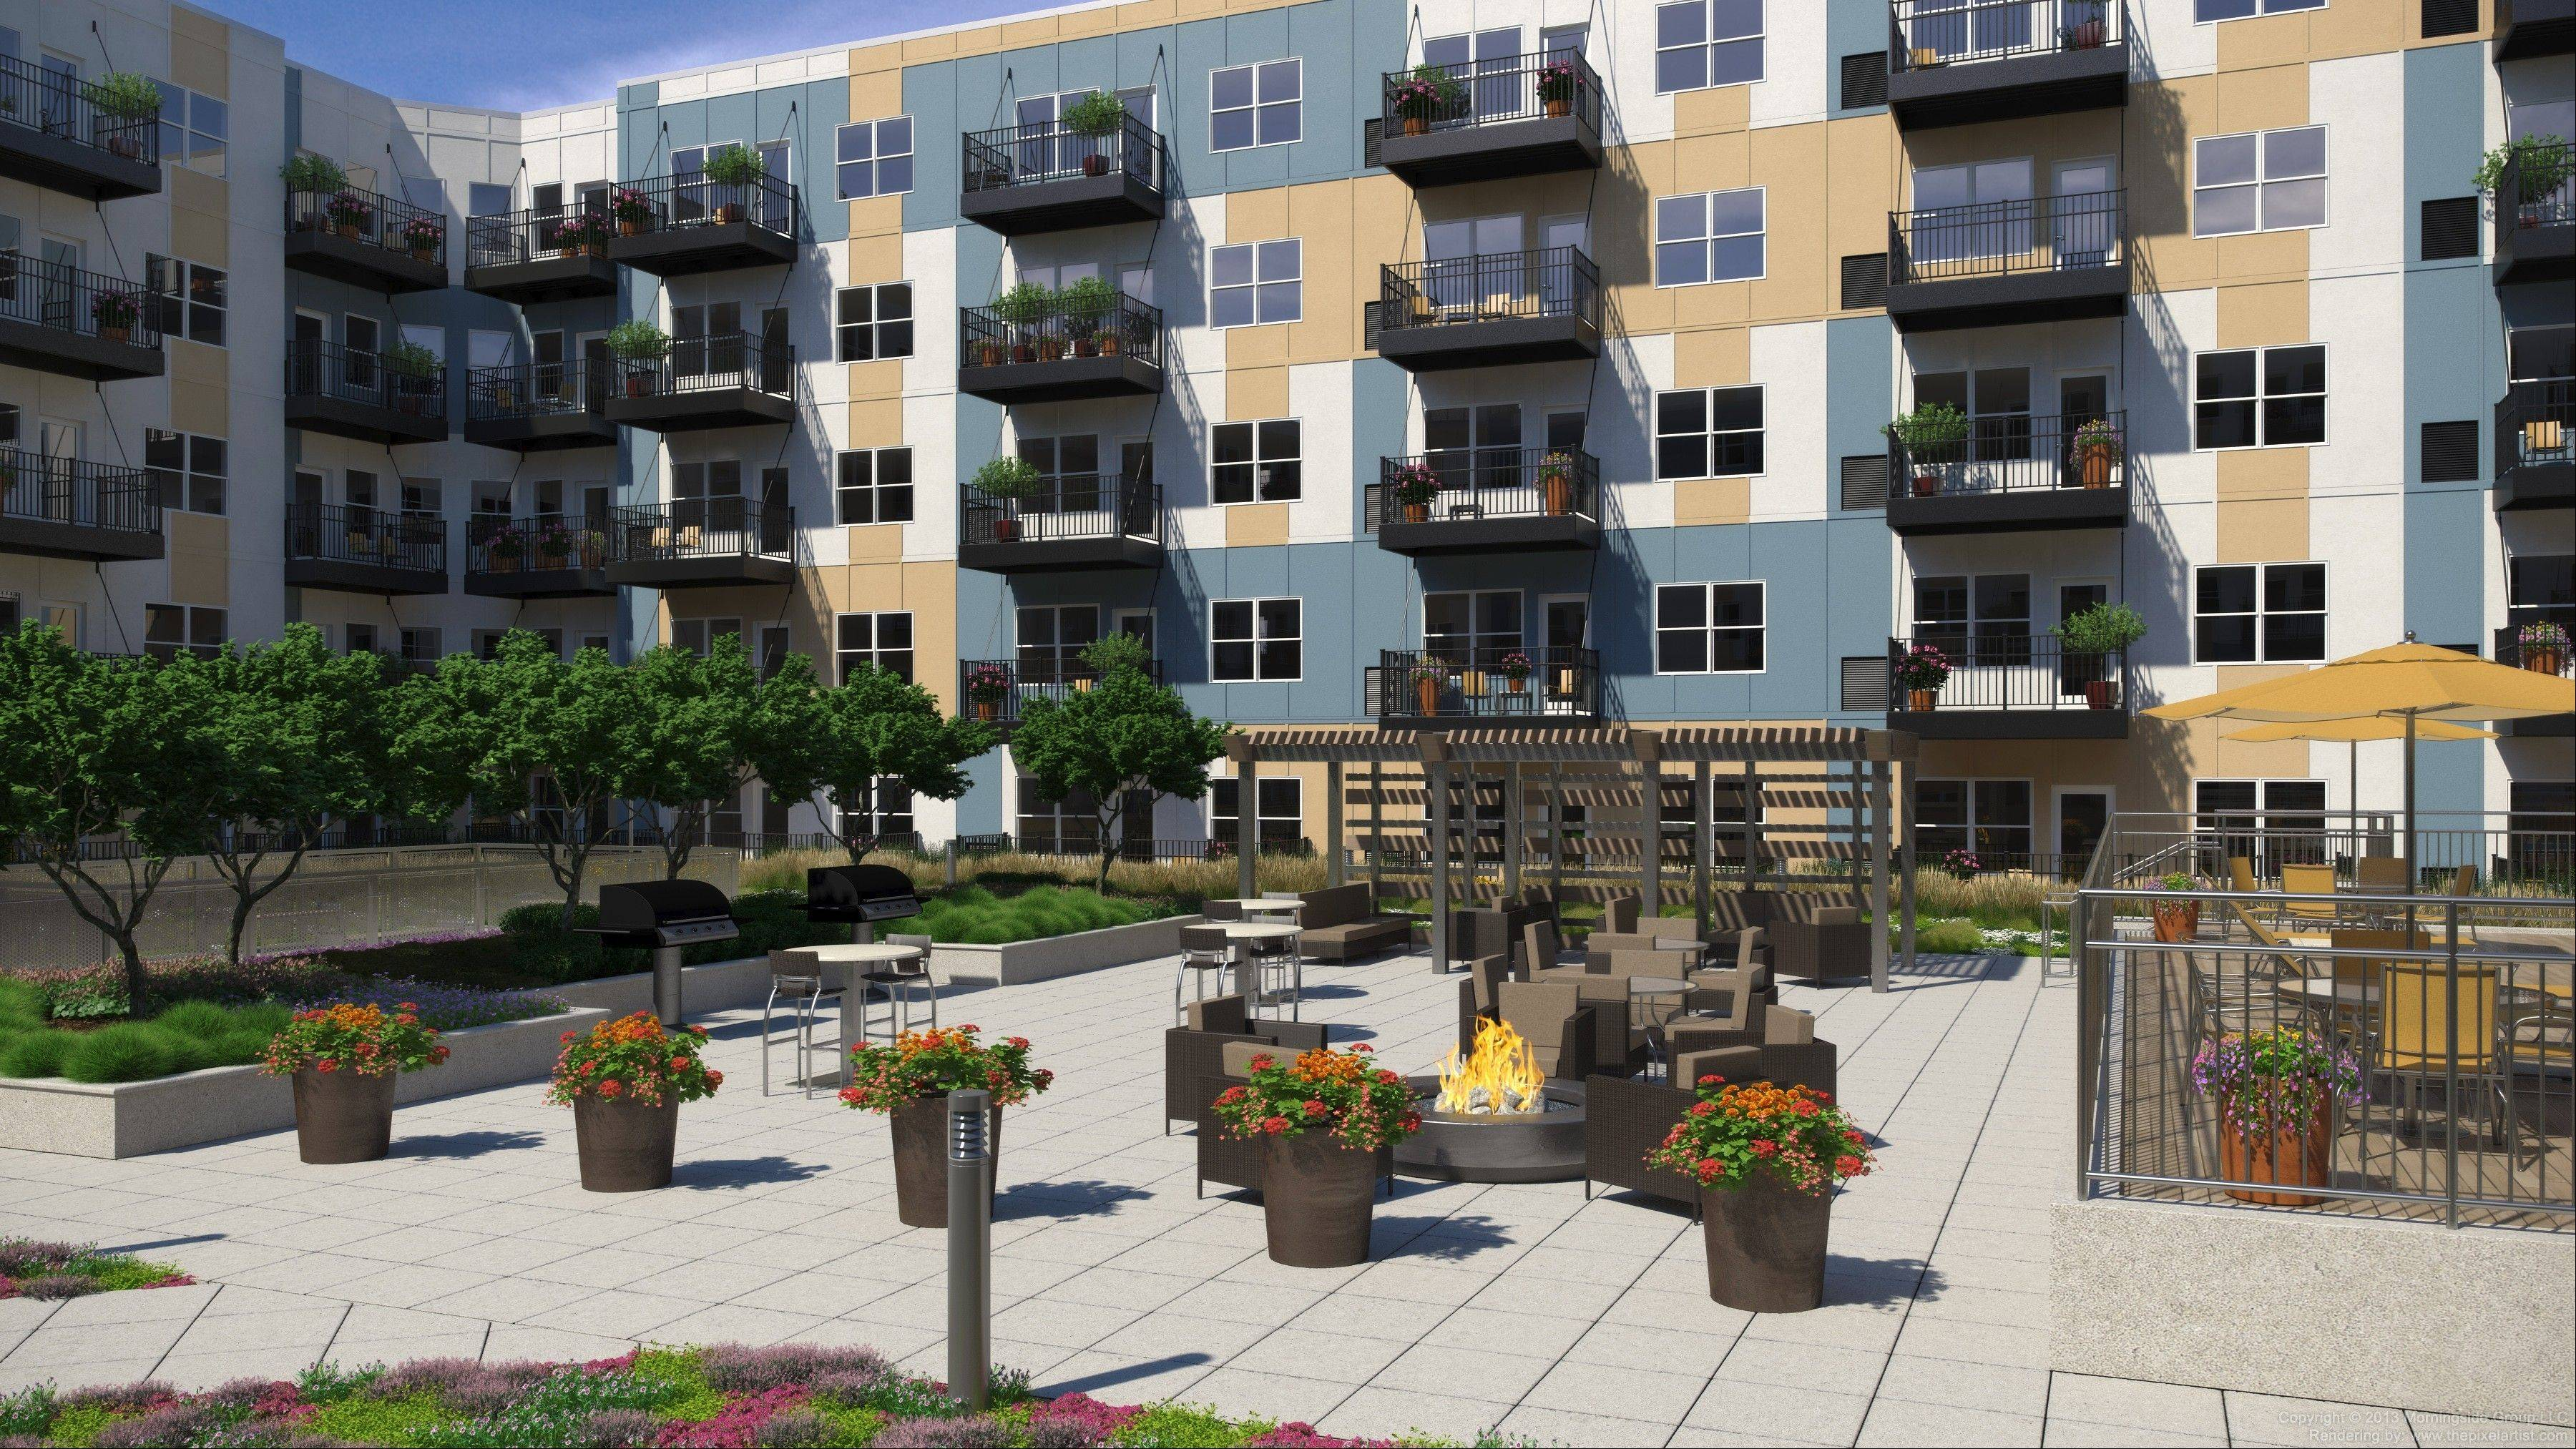 The outdoor grill and common area are just two of the luxury amenities ready for guests next spring.